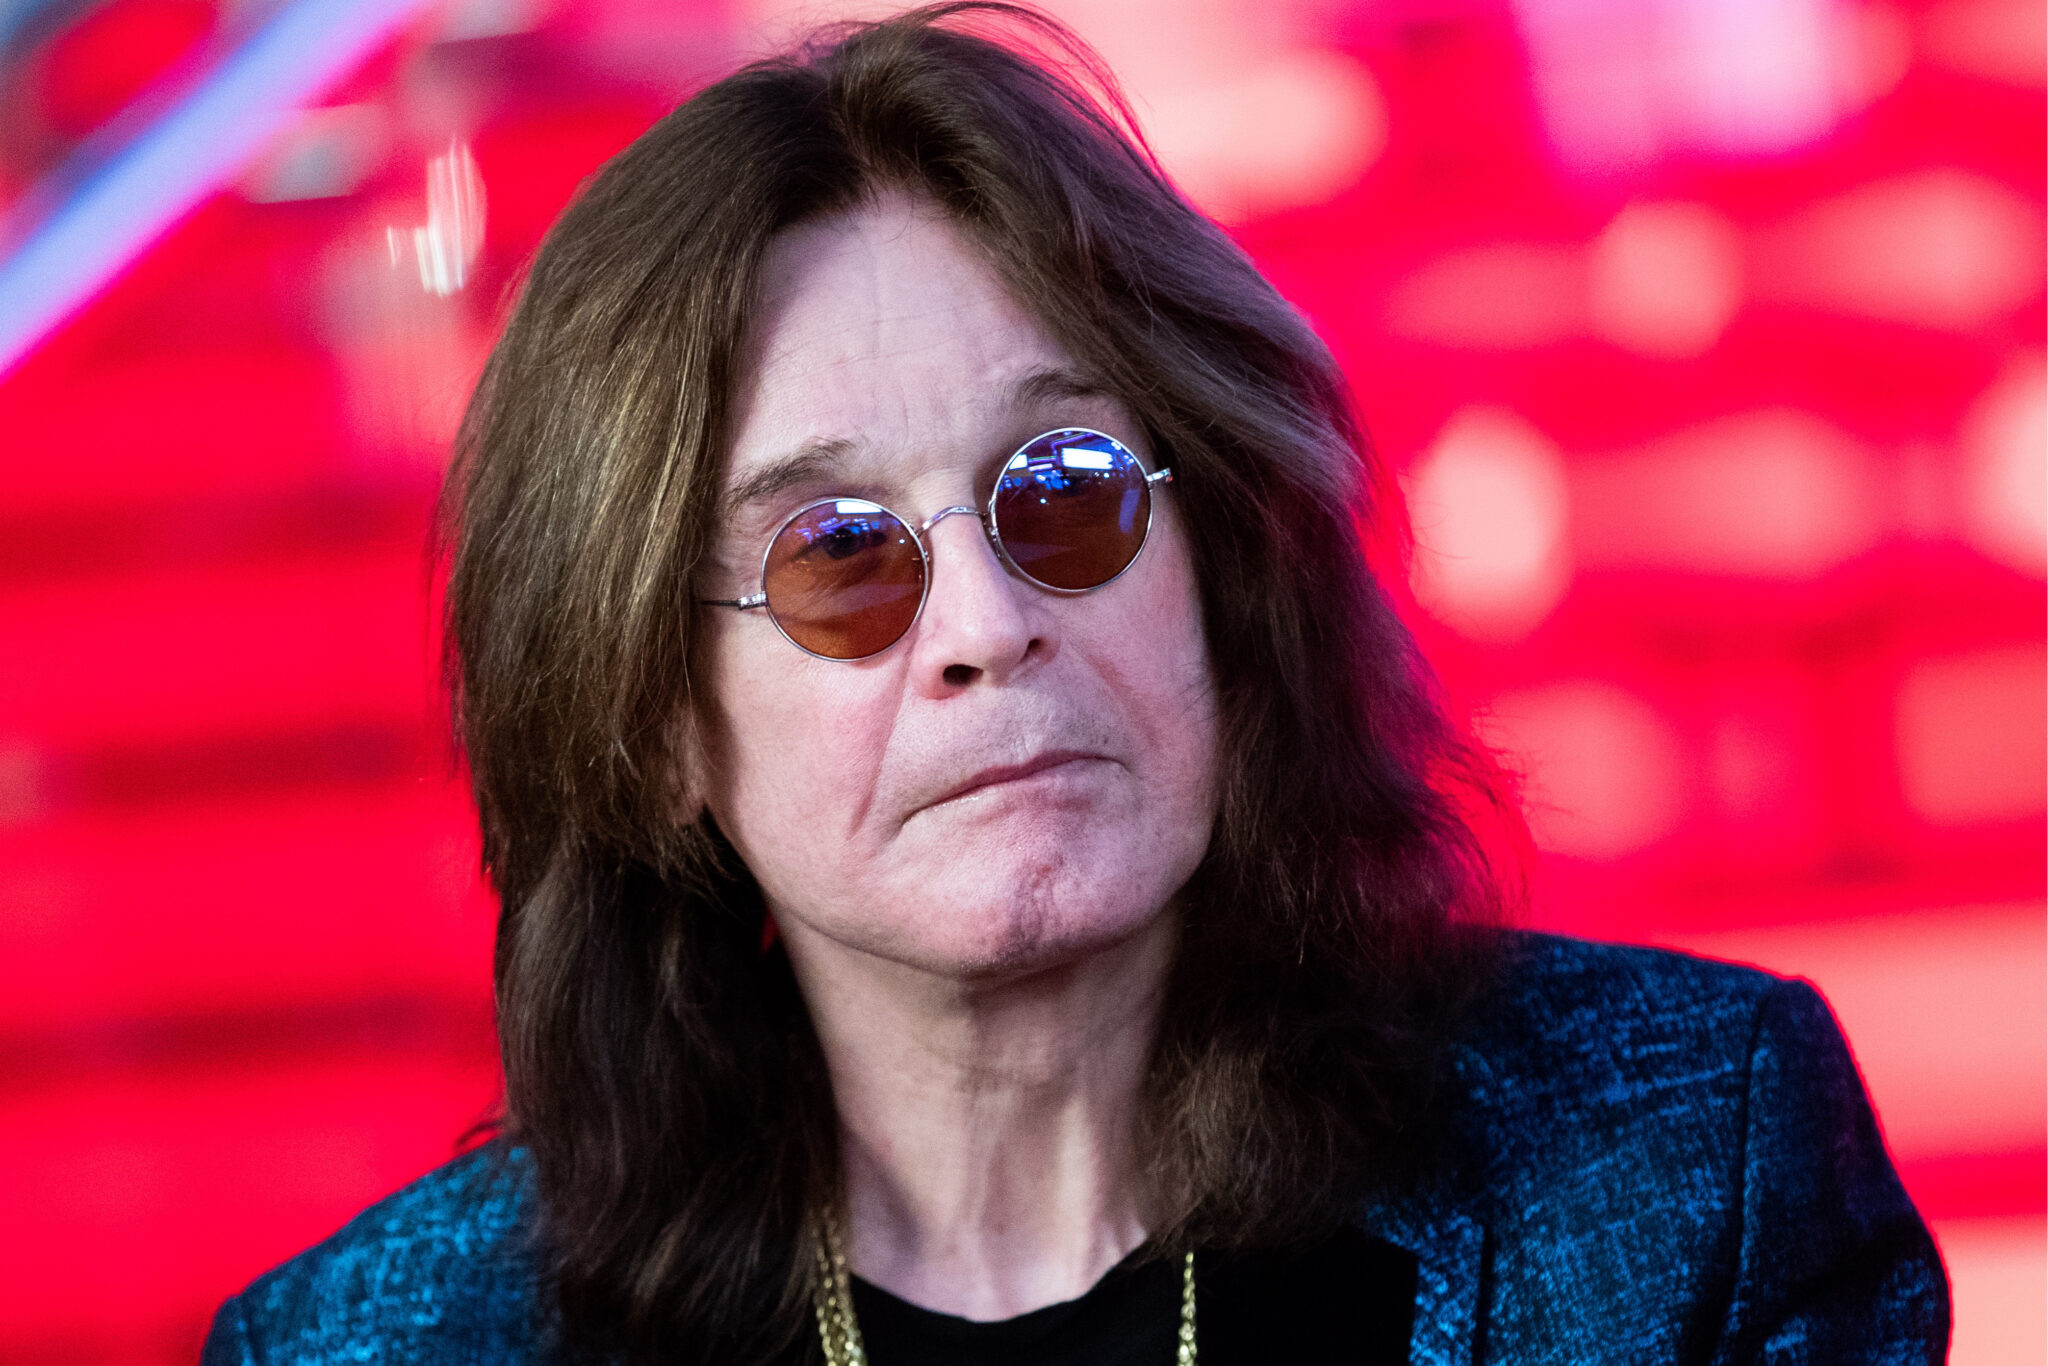 Biography: The Nine Lives of Ozzy Osbourne Premieres Labor Day On A&E Network